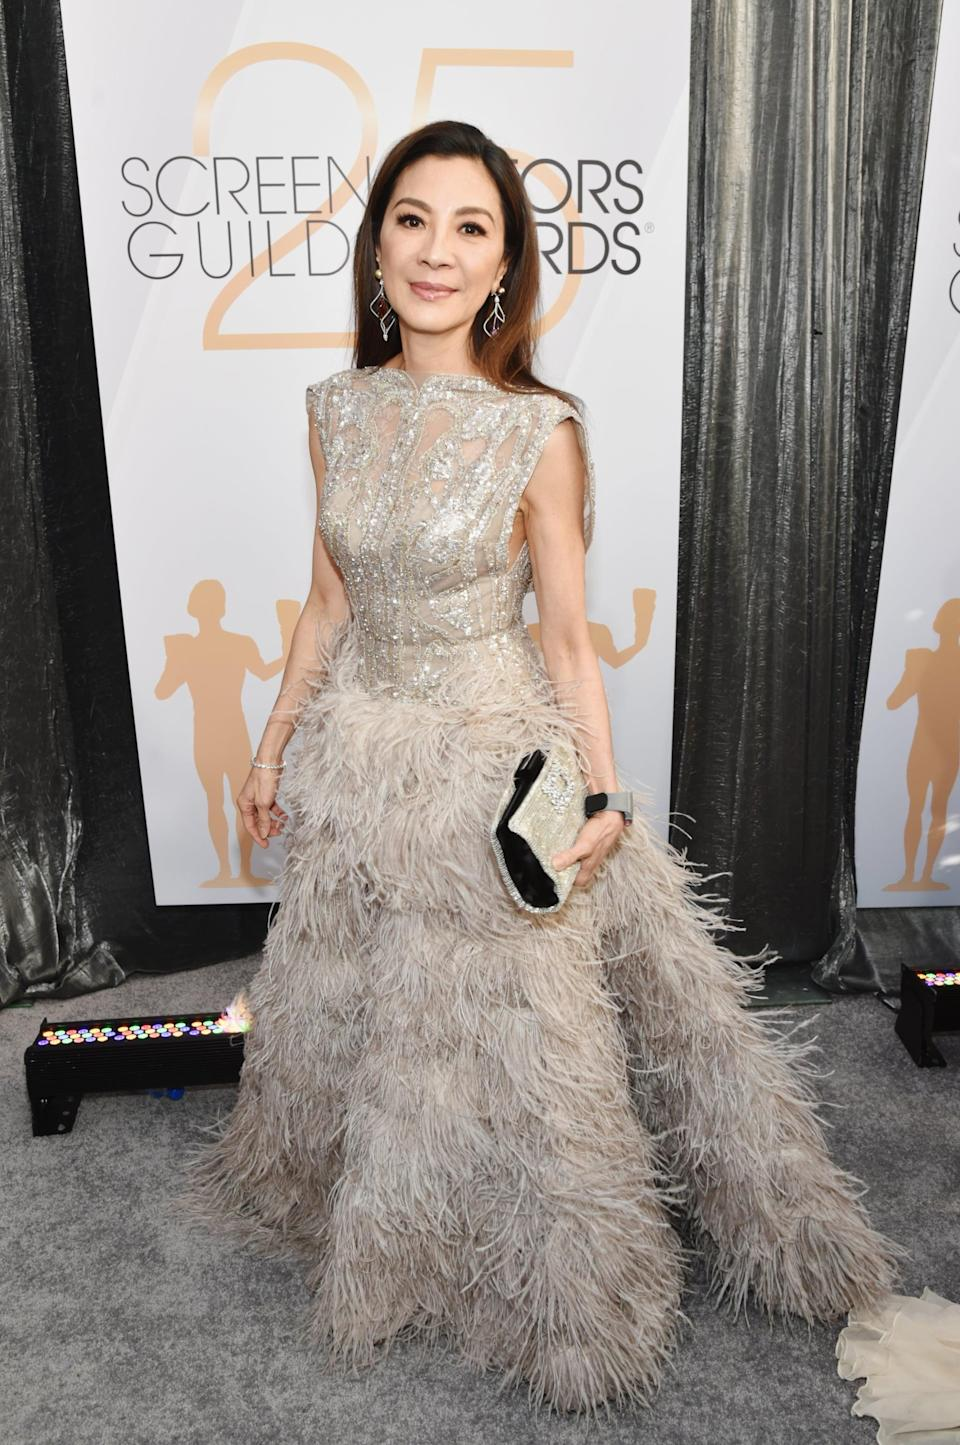 """<p>Wearing an Elie Saab gown with <a rel=""""nofollow noopener"""" href=""""https://www.popsugar.com/fashion/Michelle-Yeoh-Richard-Mille-Watch-2019-SAG-Awards-45718079"""" target=""""_blank"""" data-ylk=""""slk:her own jewels."""" class=""""link rapid-noclick-resp"""">her own jewels.</a> </p>"""